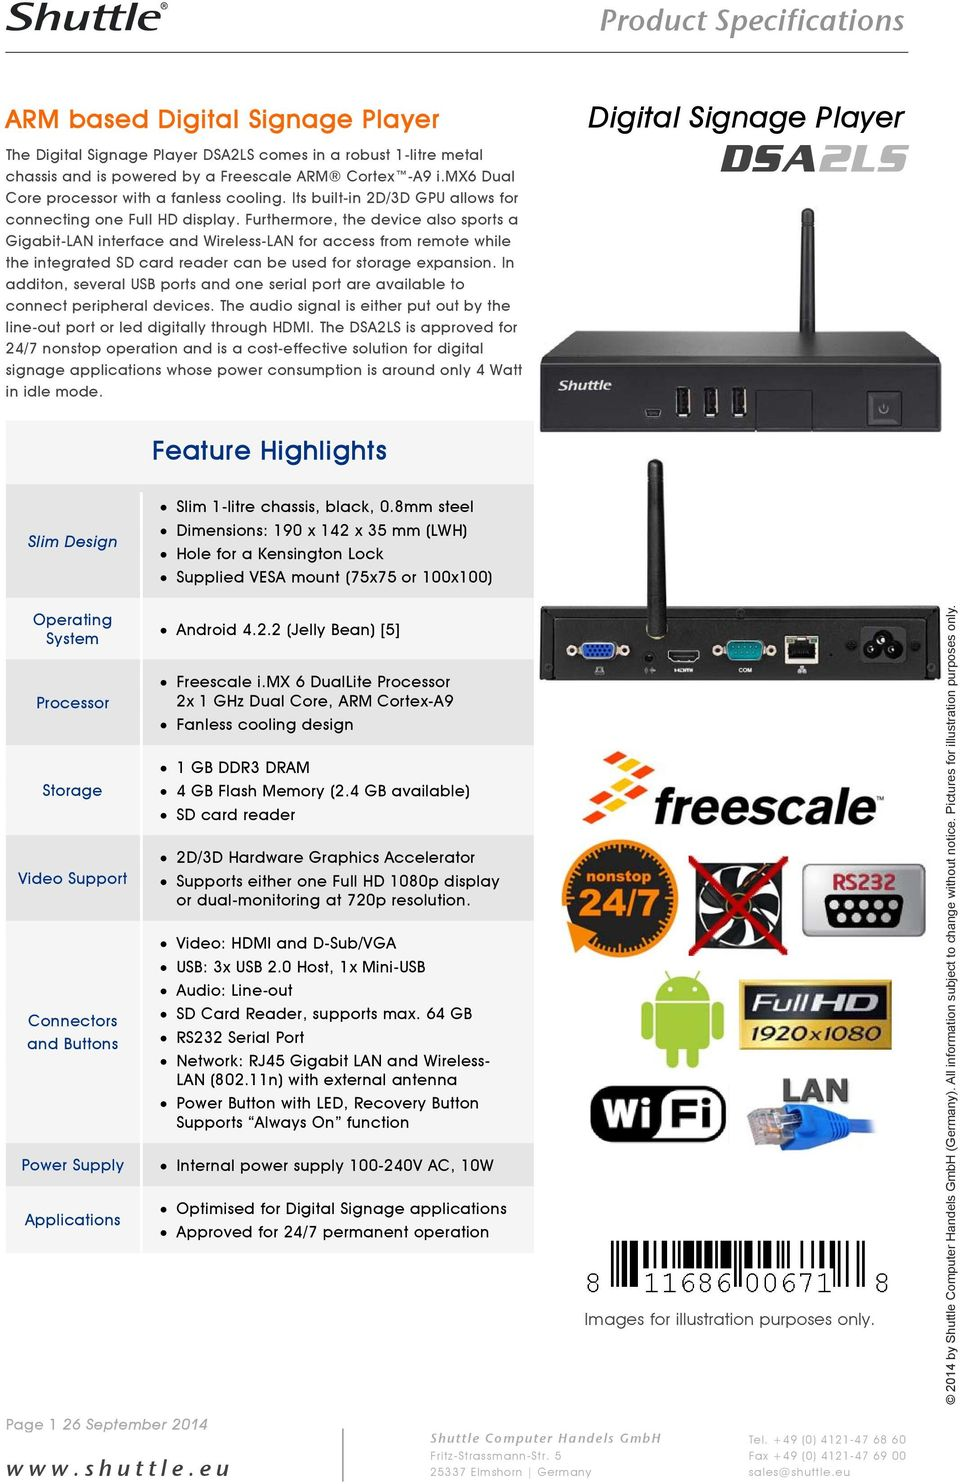 Furthermore, the device also sports a Gigabit-LAN interface and Wireless-LAN for access from remote while the integrated SD card reader can be used for storage expansion.